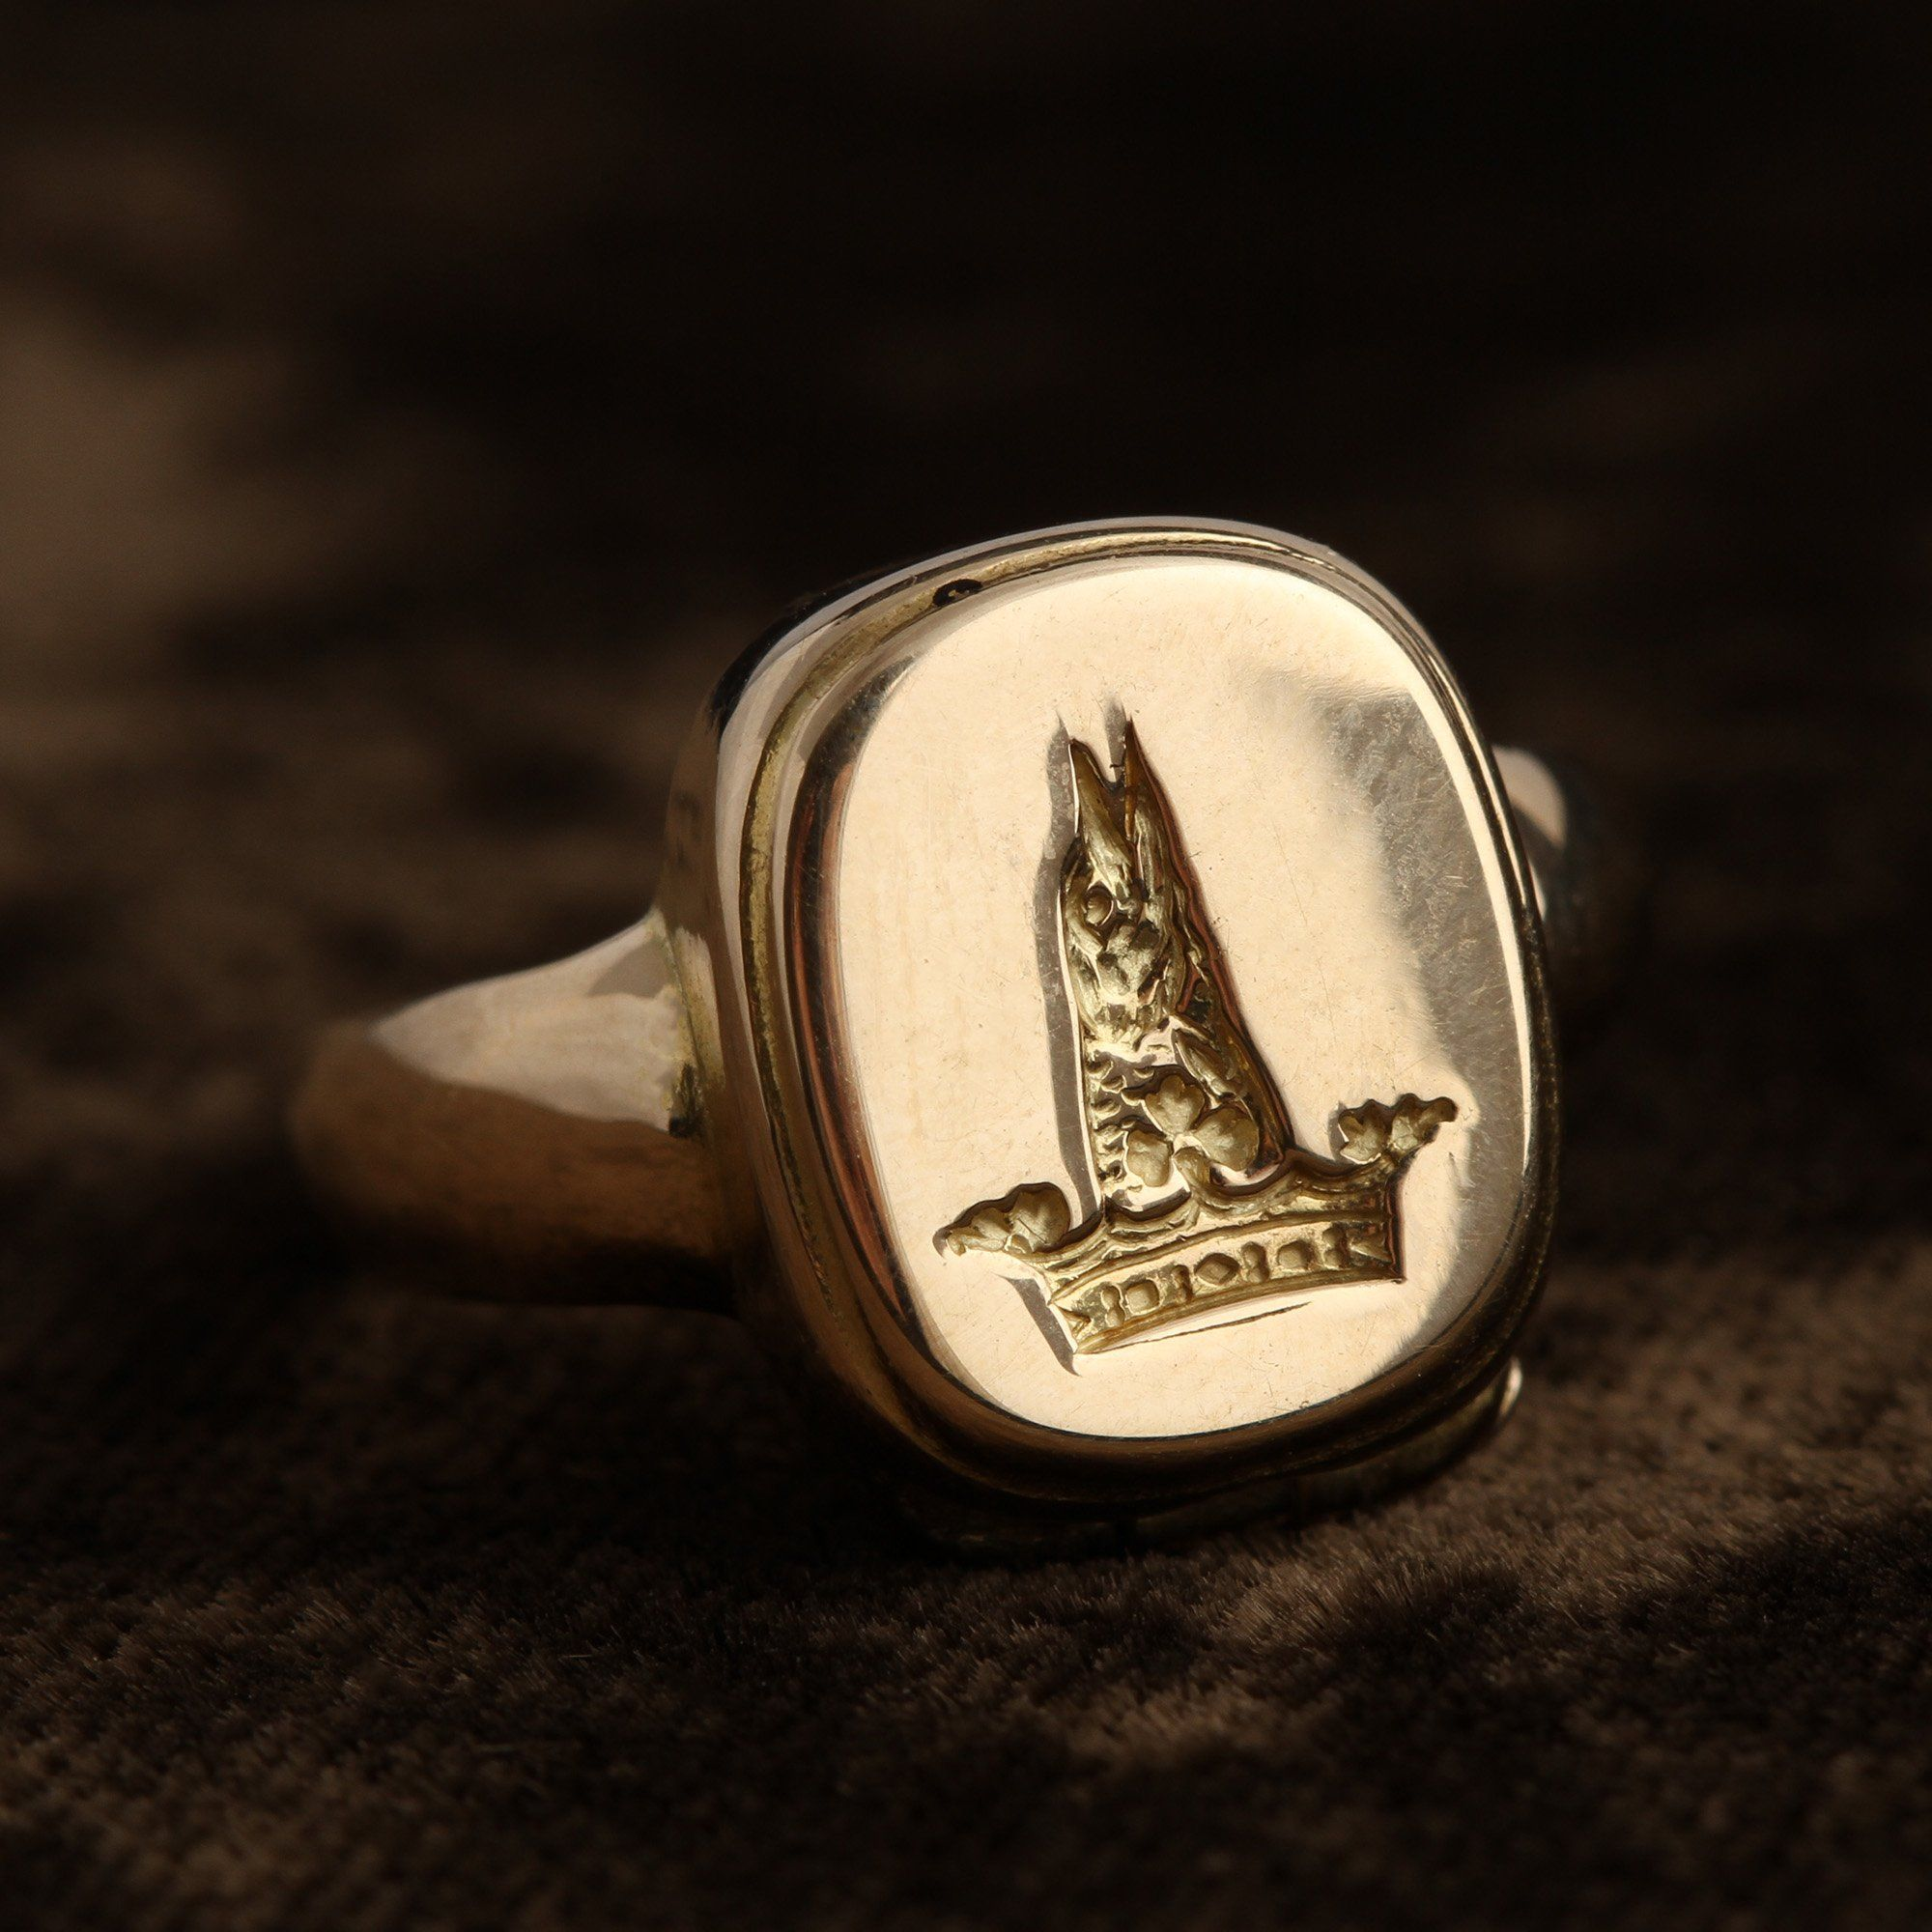 Detail of Victorian Signet Ring with Concealed Coffer Key